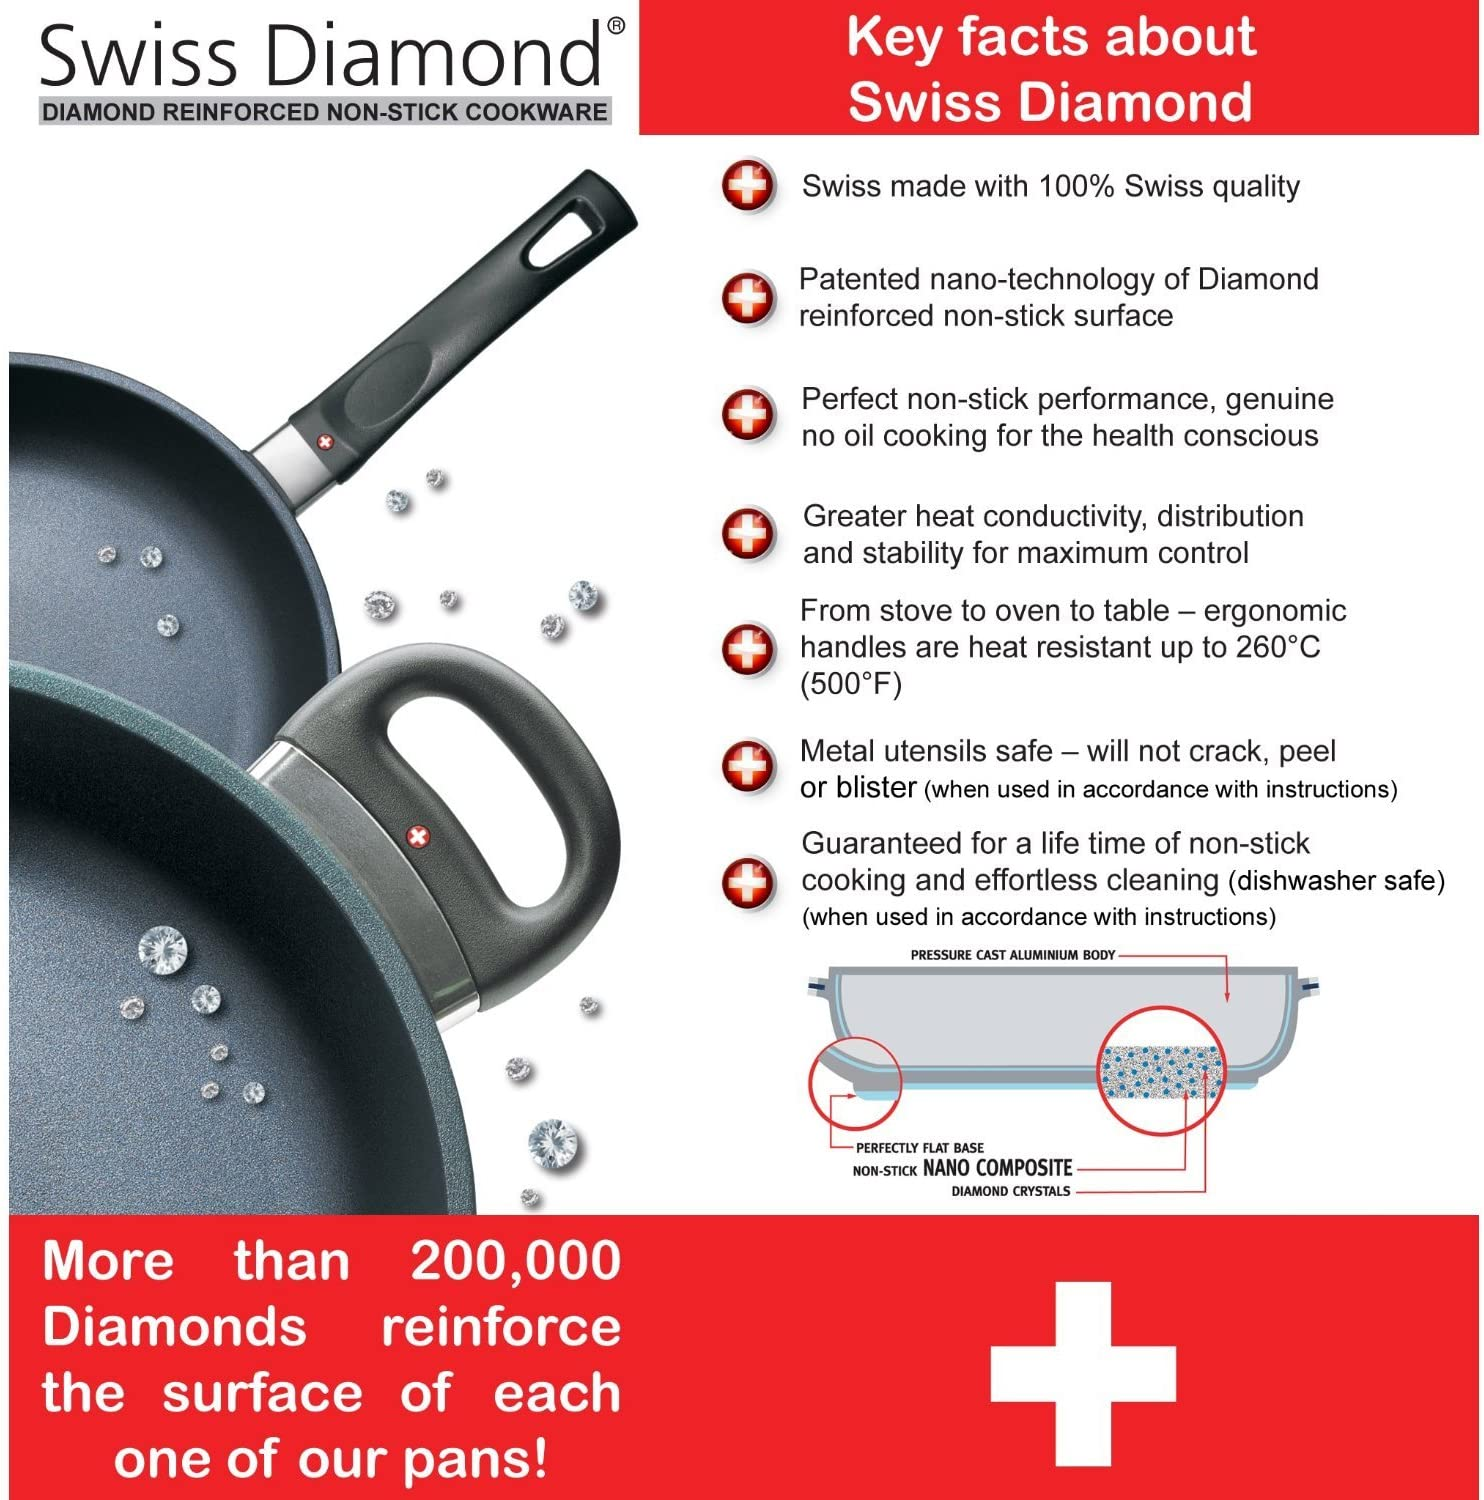 Swiss Diamond nonstick frying pan / Swiss Diamond reviews